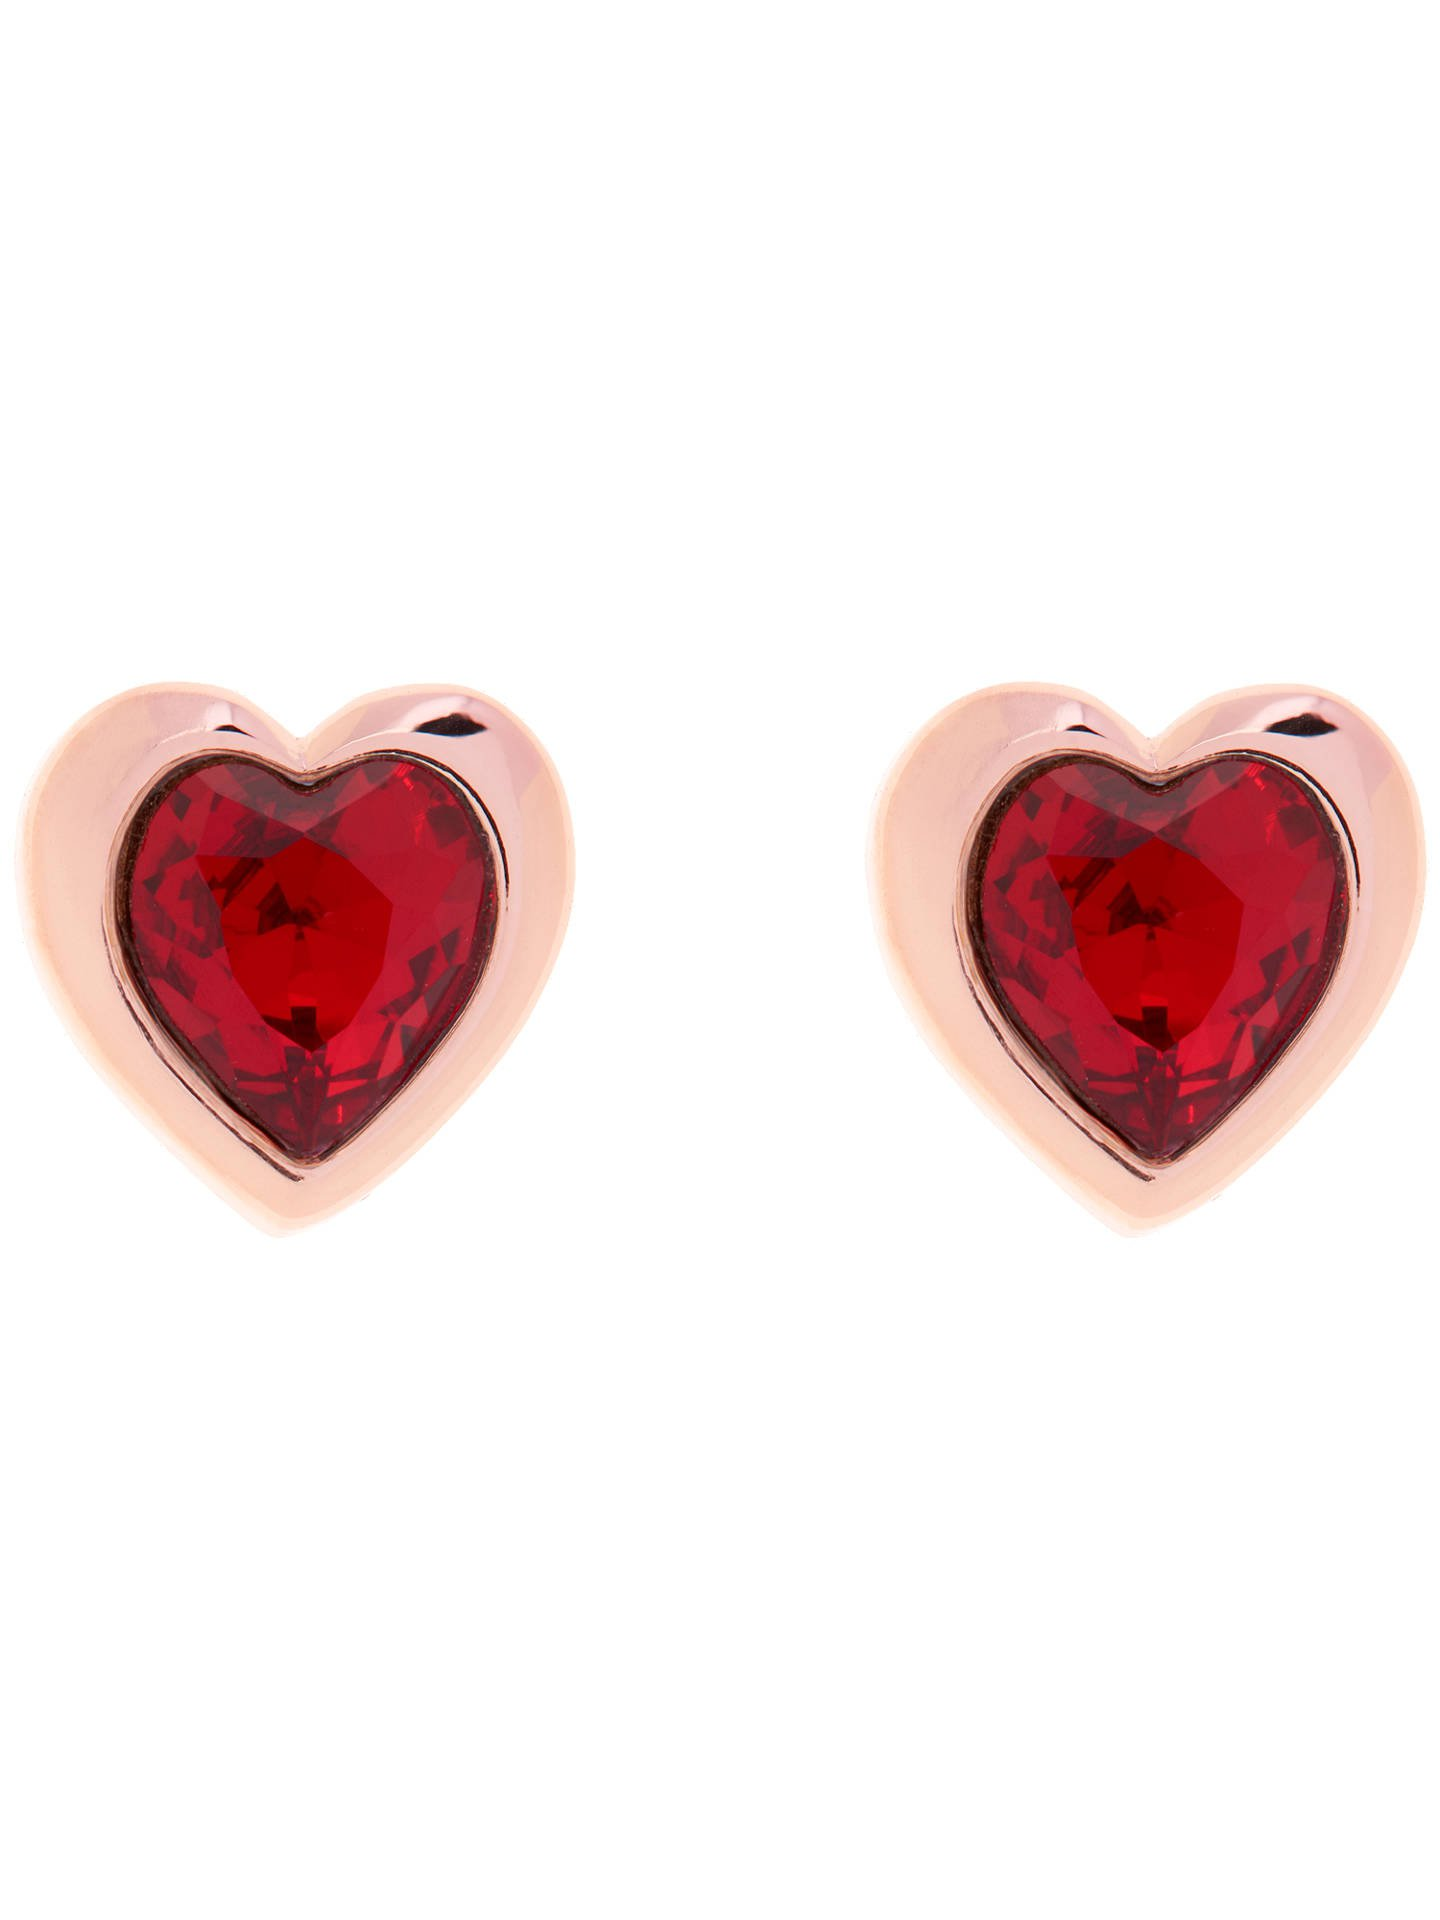 Ted Baker Hanella Swarovski Crystal Heart Stud Earrings at John Lewis & Partners